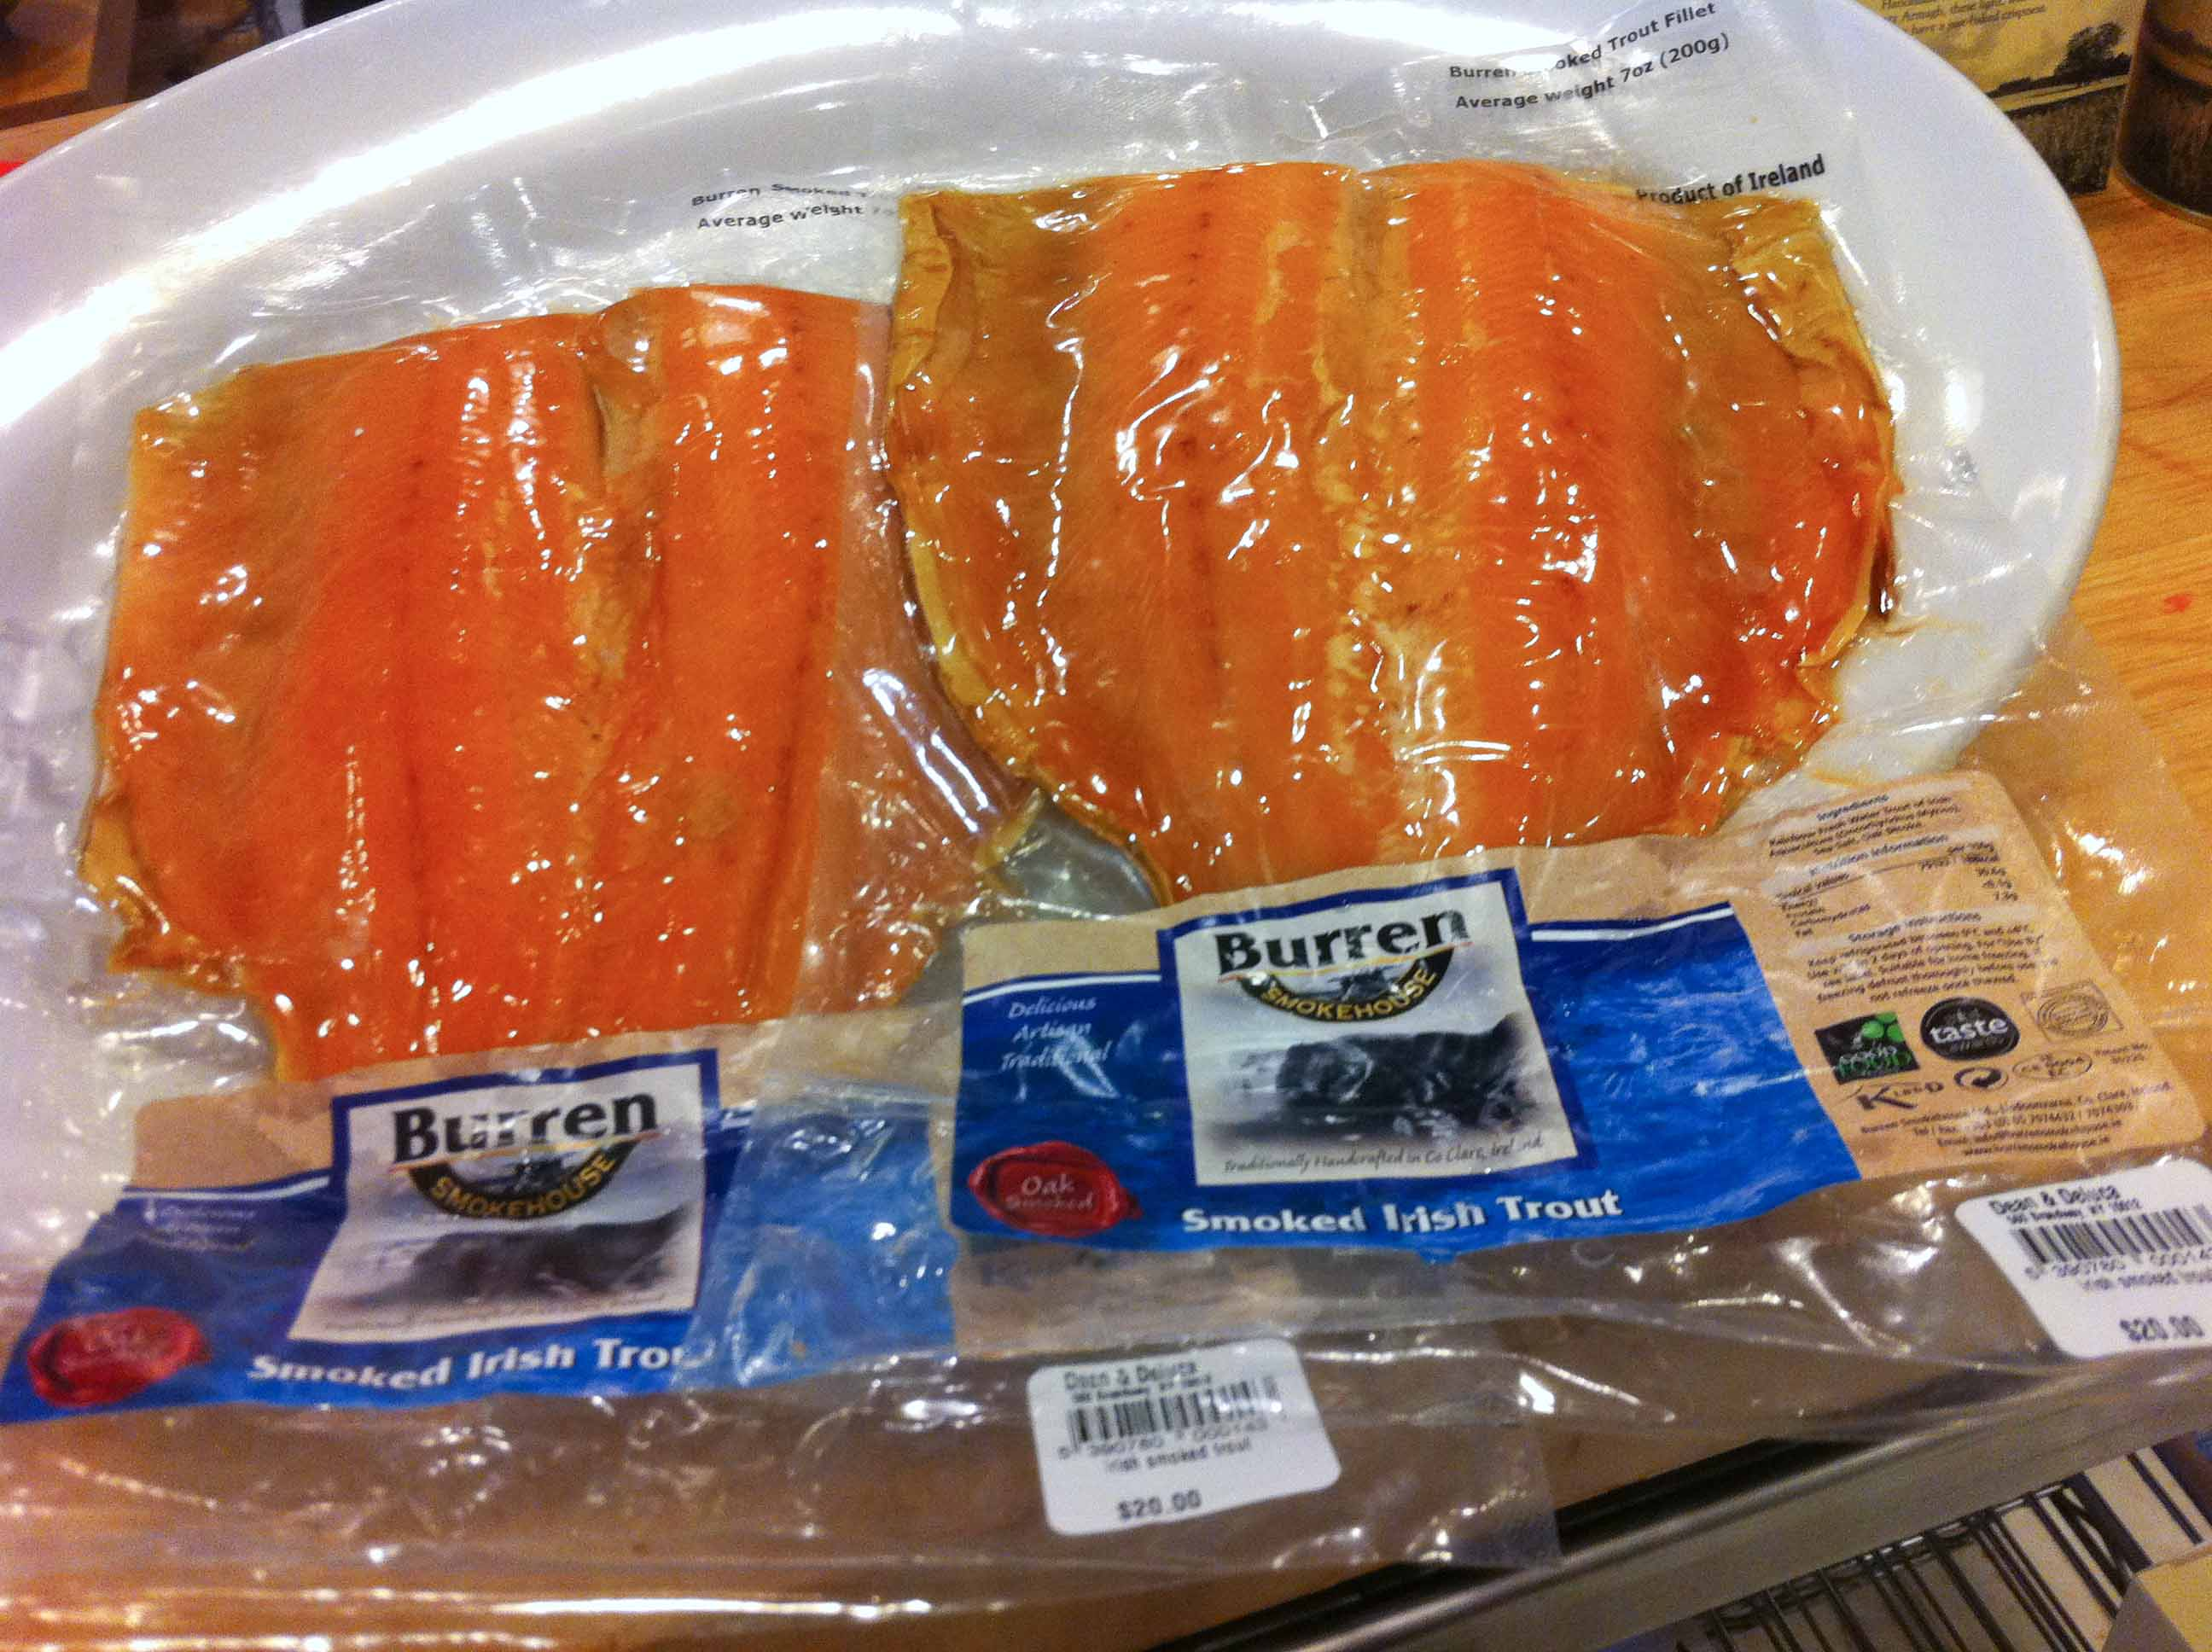 Burren Smoked Salmon & Irish Trout